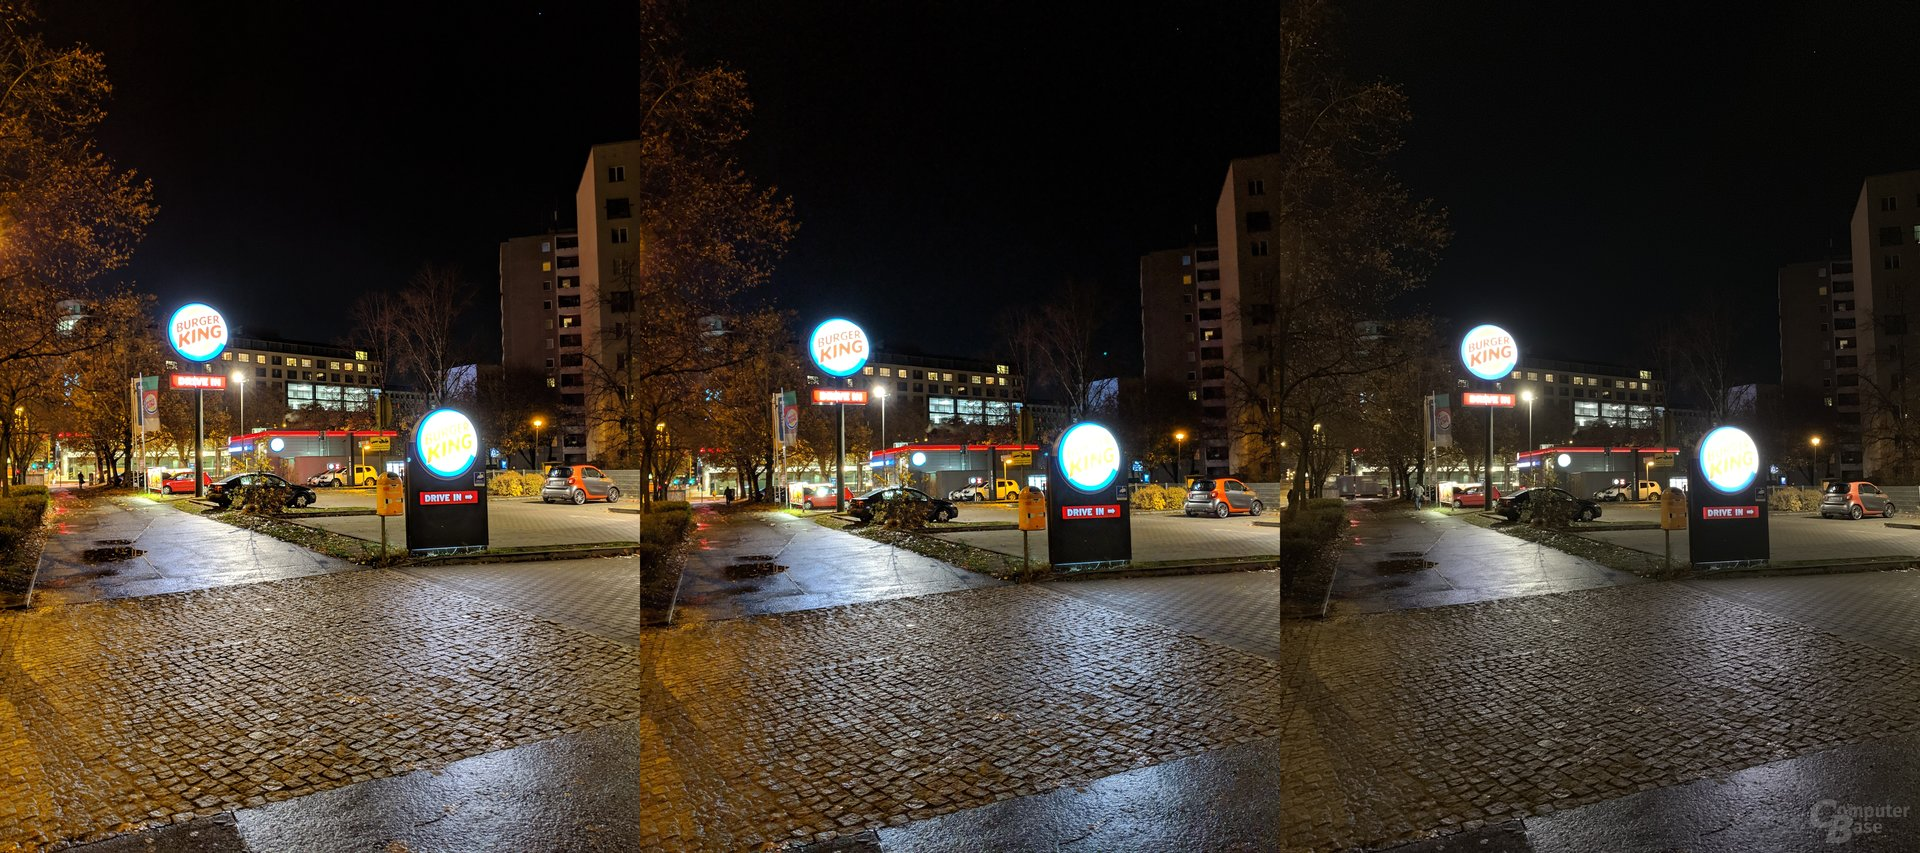 Pixel 3 XL mit Night Sight, Pixel 3 XL ohne Night Sight, iPhone Xs Max